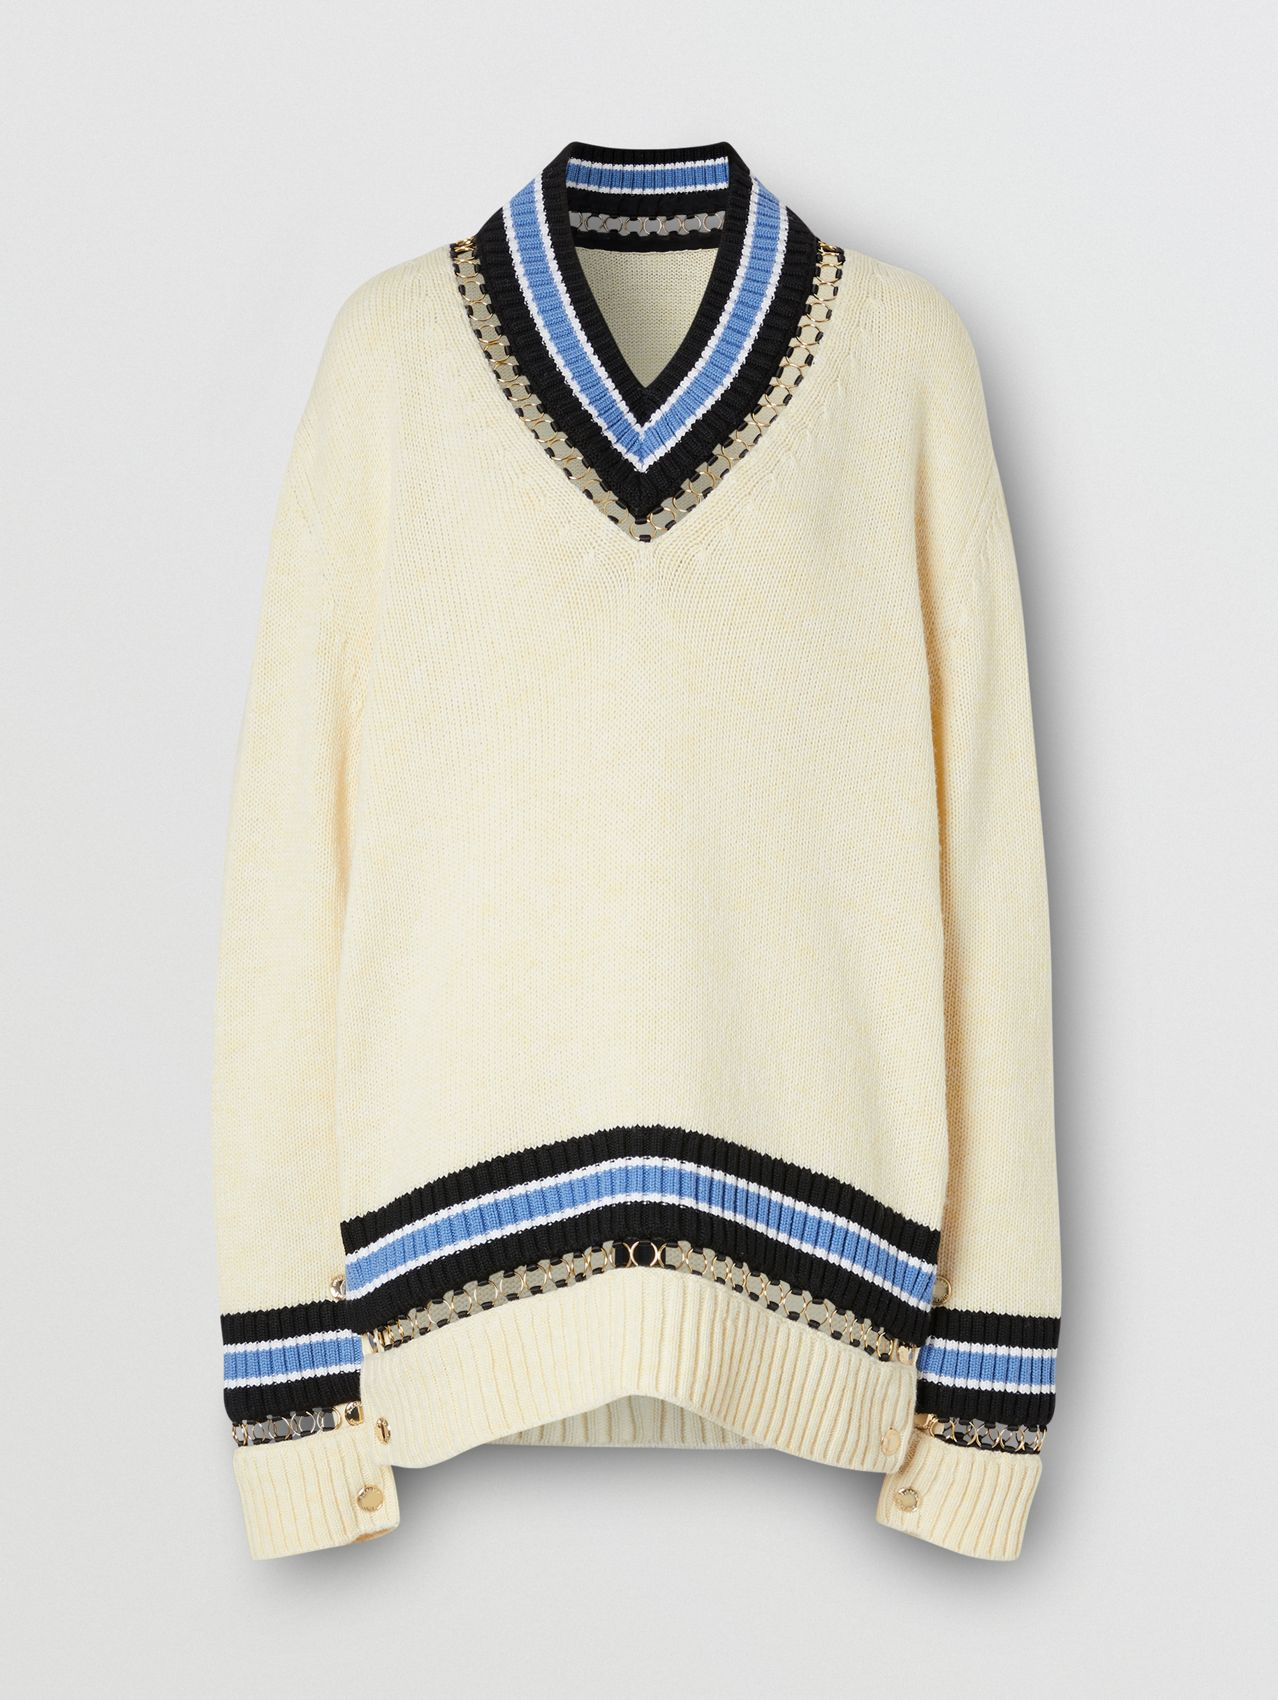 Ring-pierced Wool Oversized Cricket Sweater in White